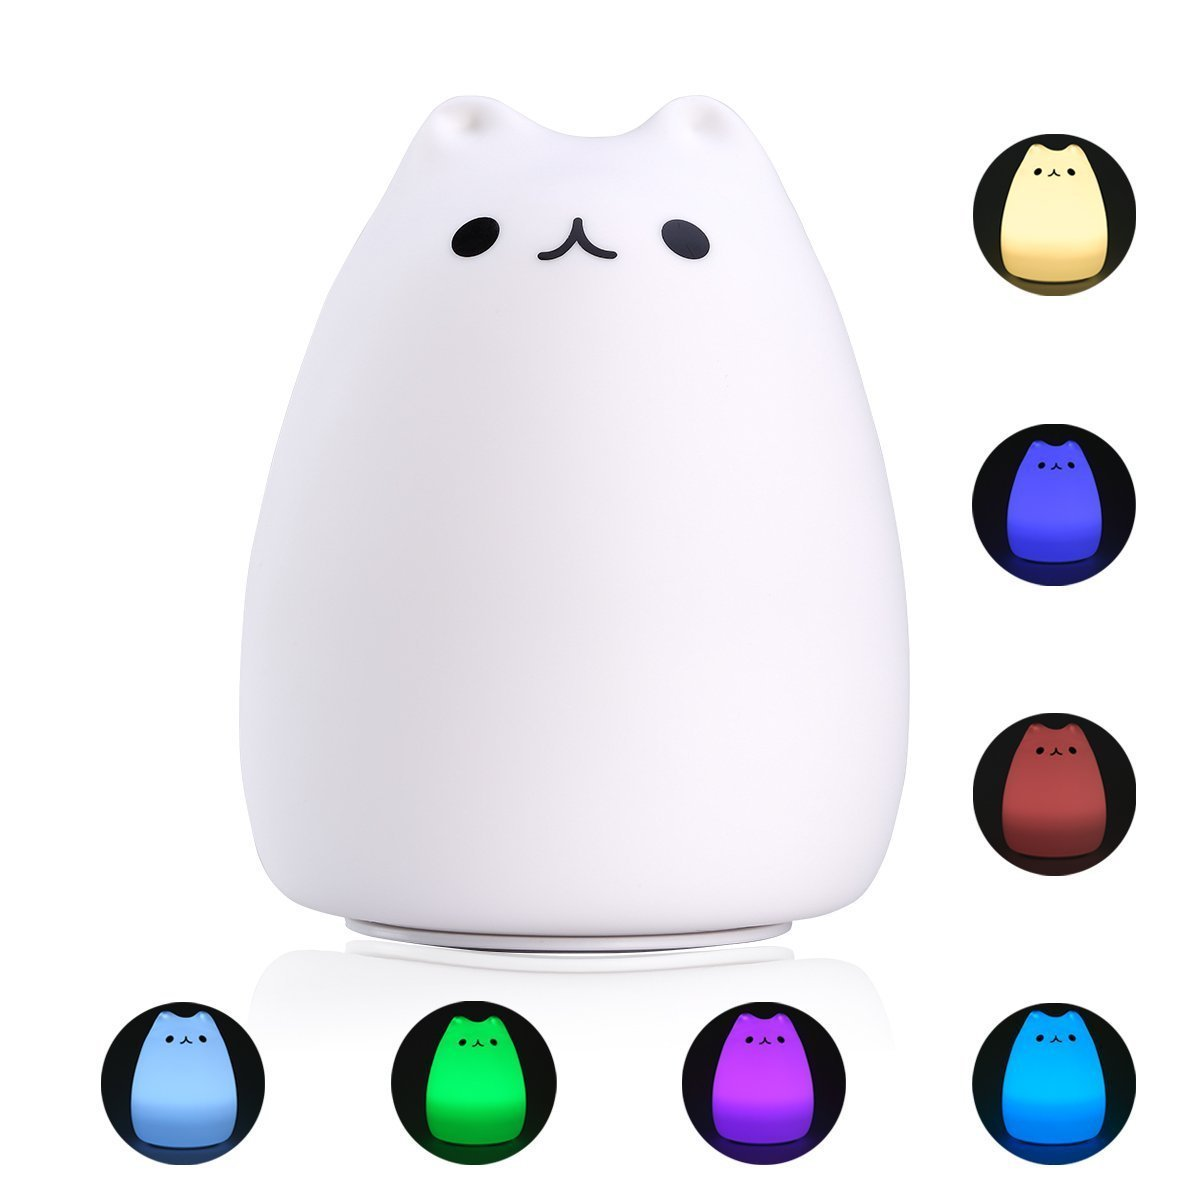 S&G night light Cute Smile Cat Silicon LED Desk Lamp with 7 Changing Color for Baby Bedroom Office- Warm White